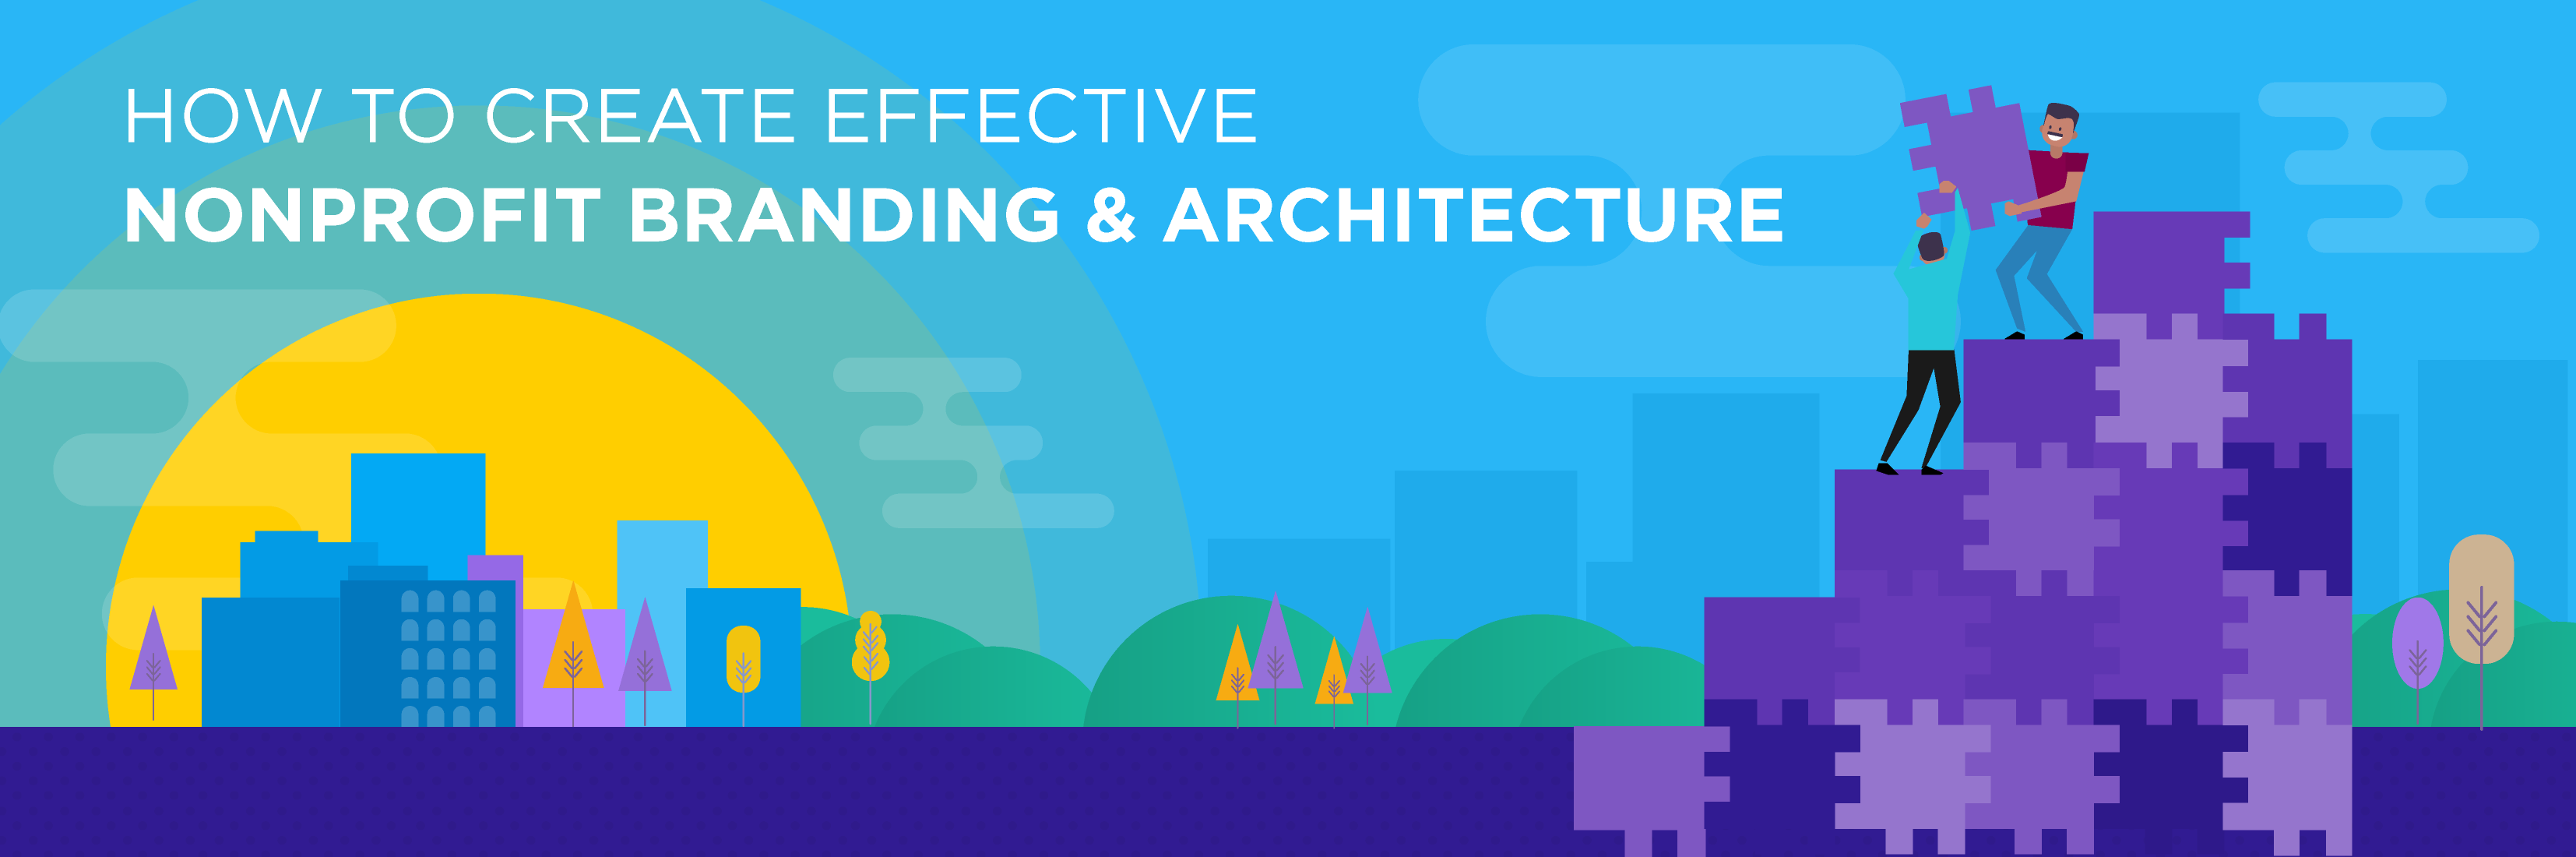 How to create effective nonprofit branding architecture- Part 1